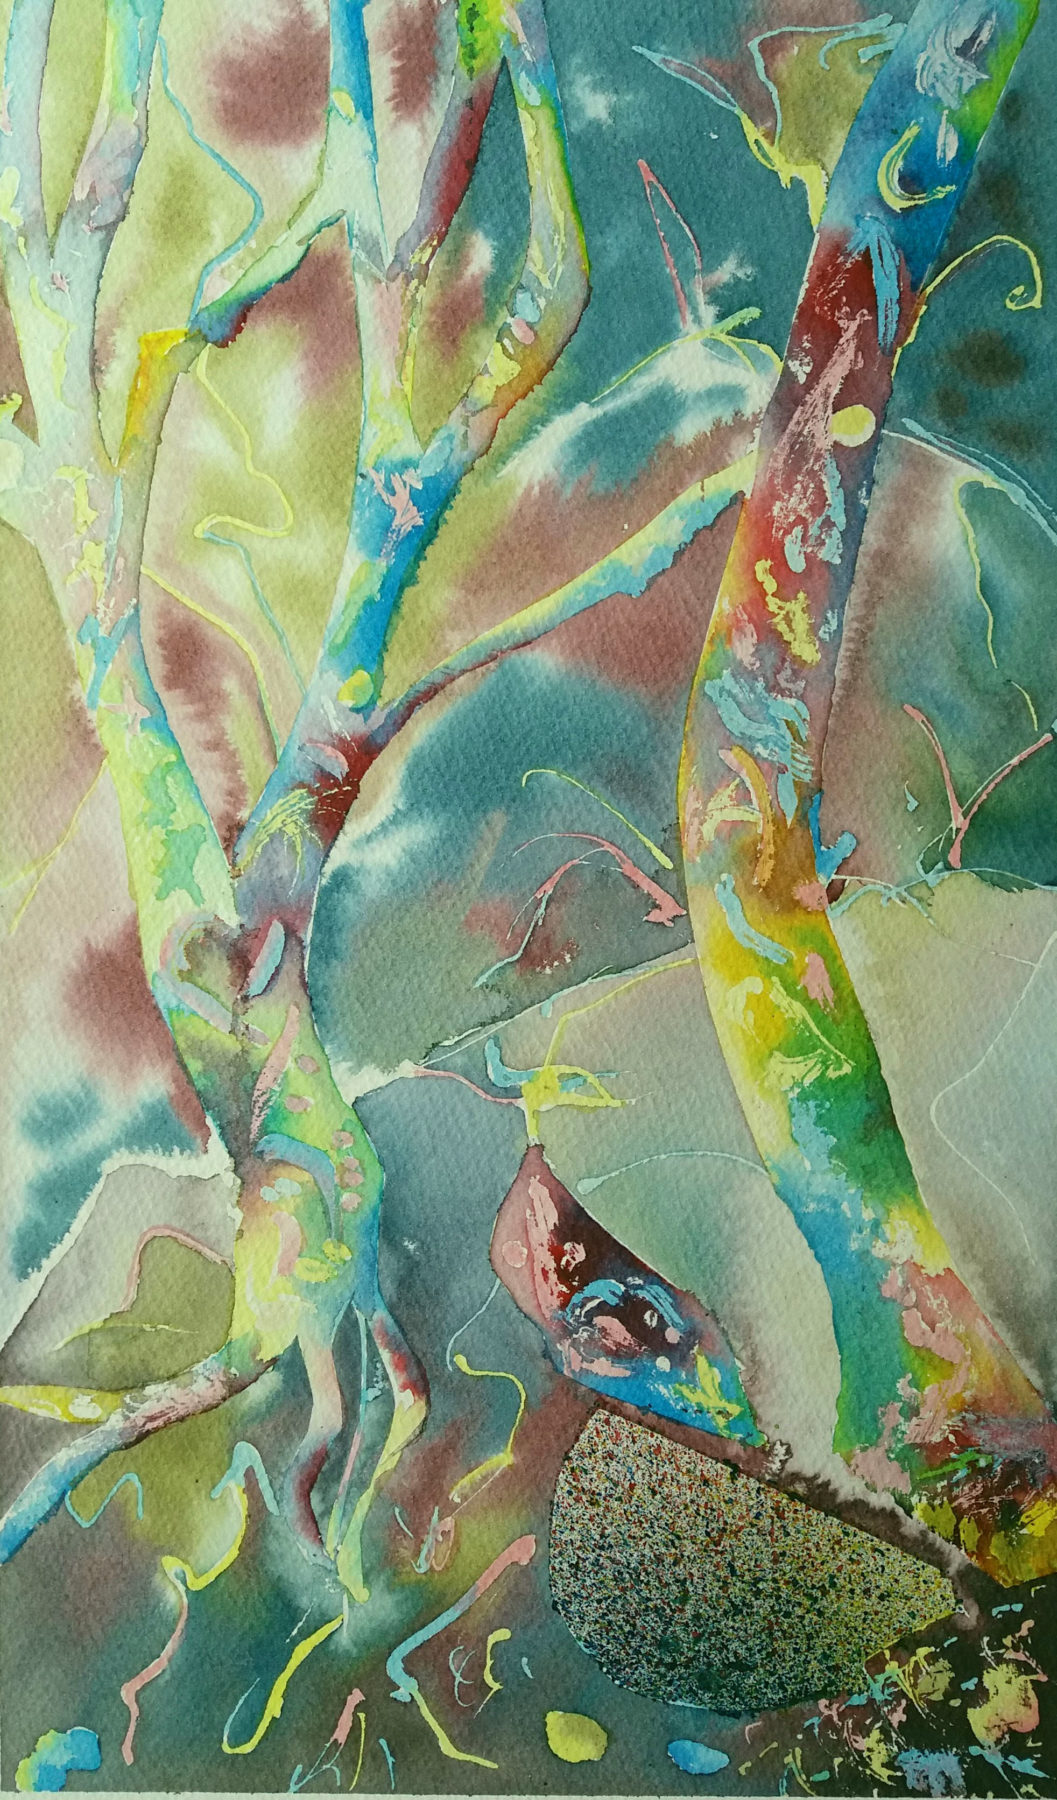 This painting is part of a series of three by the artist. All are abstract renderings of tree trunks floating against a multicoloured background. The use of vibrant blues, yellows, reds and greens give the painting a fairytale quality.